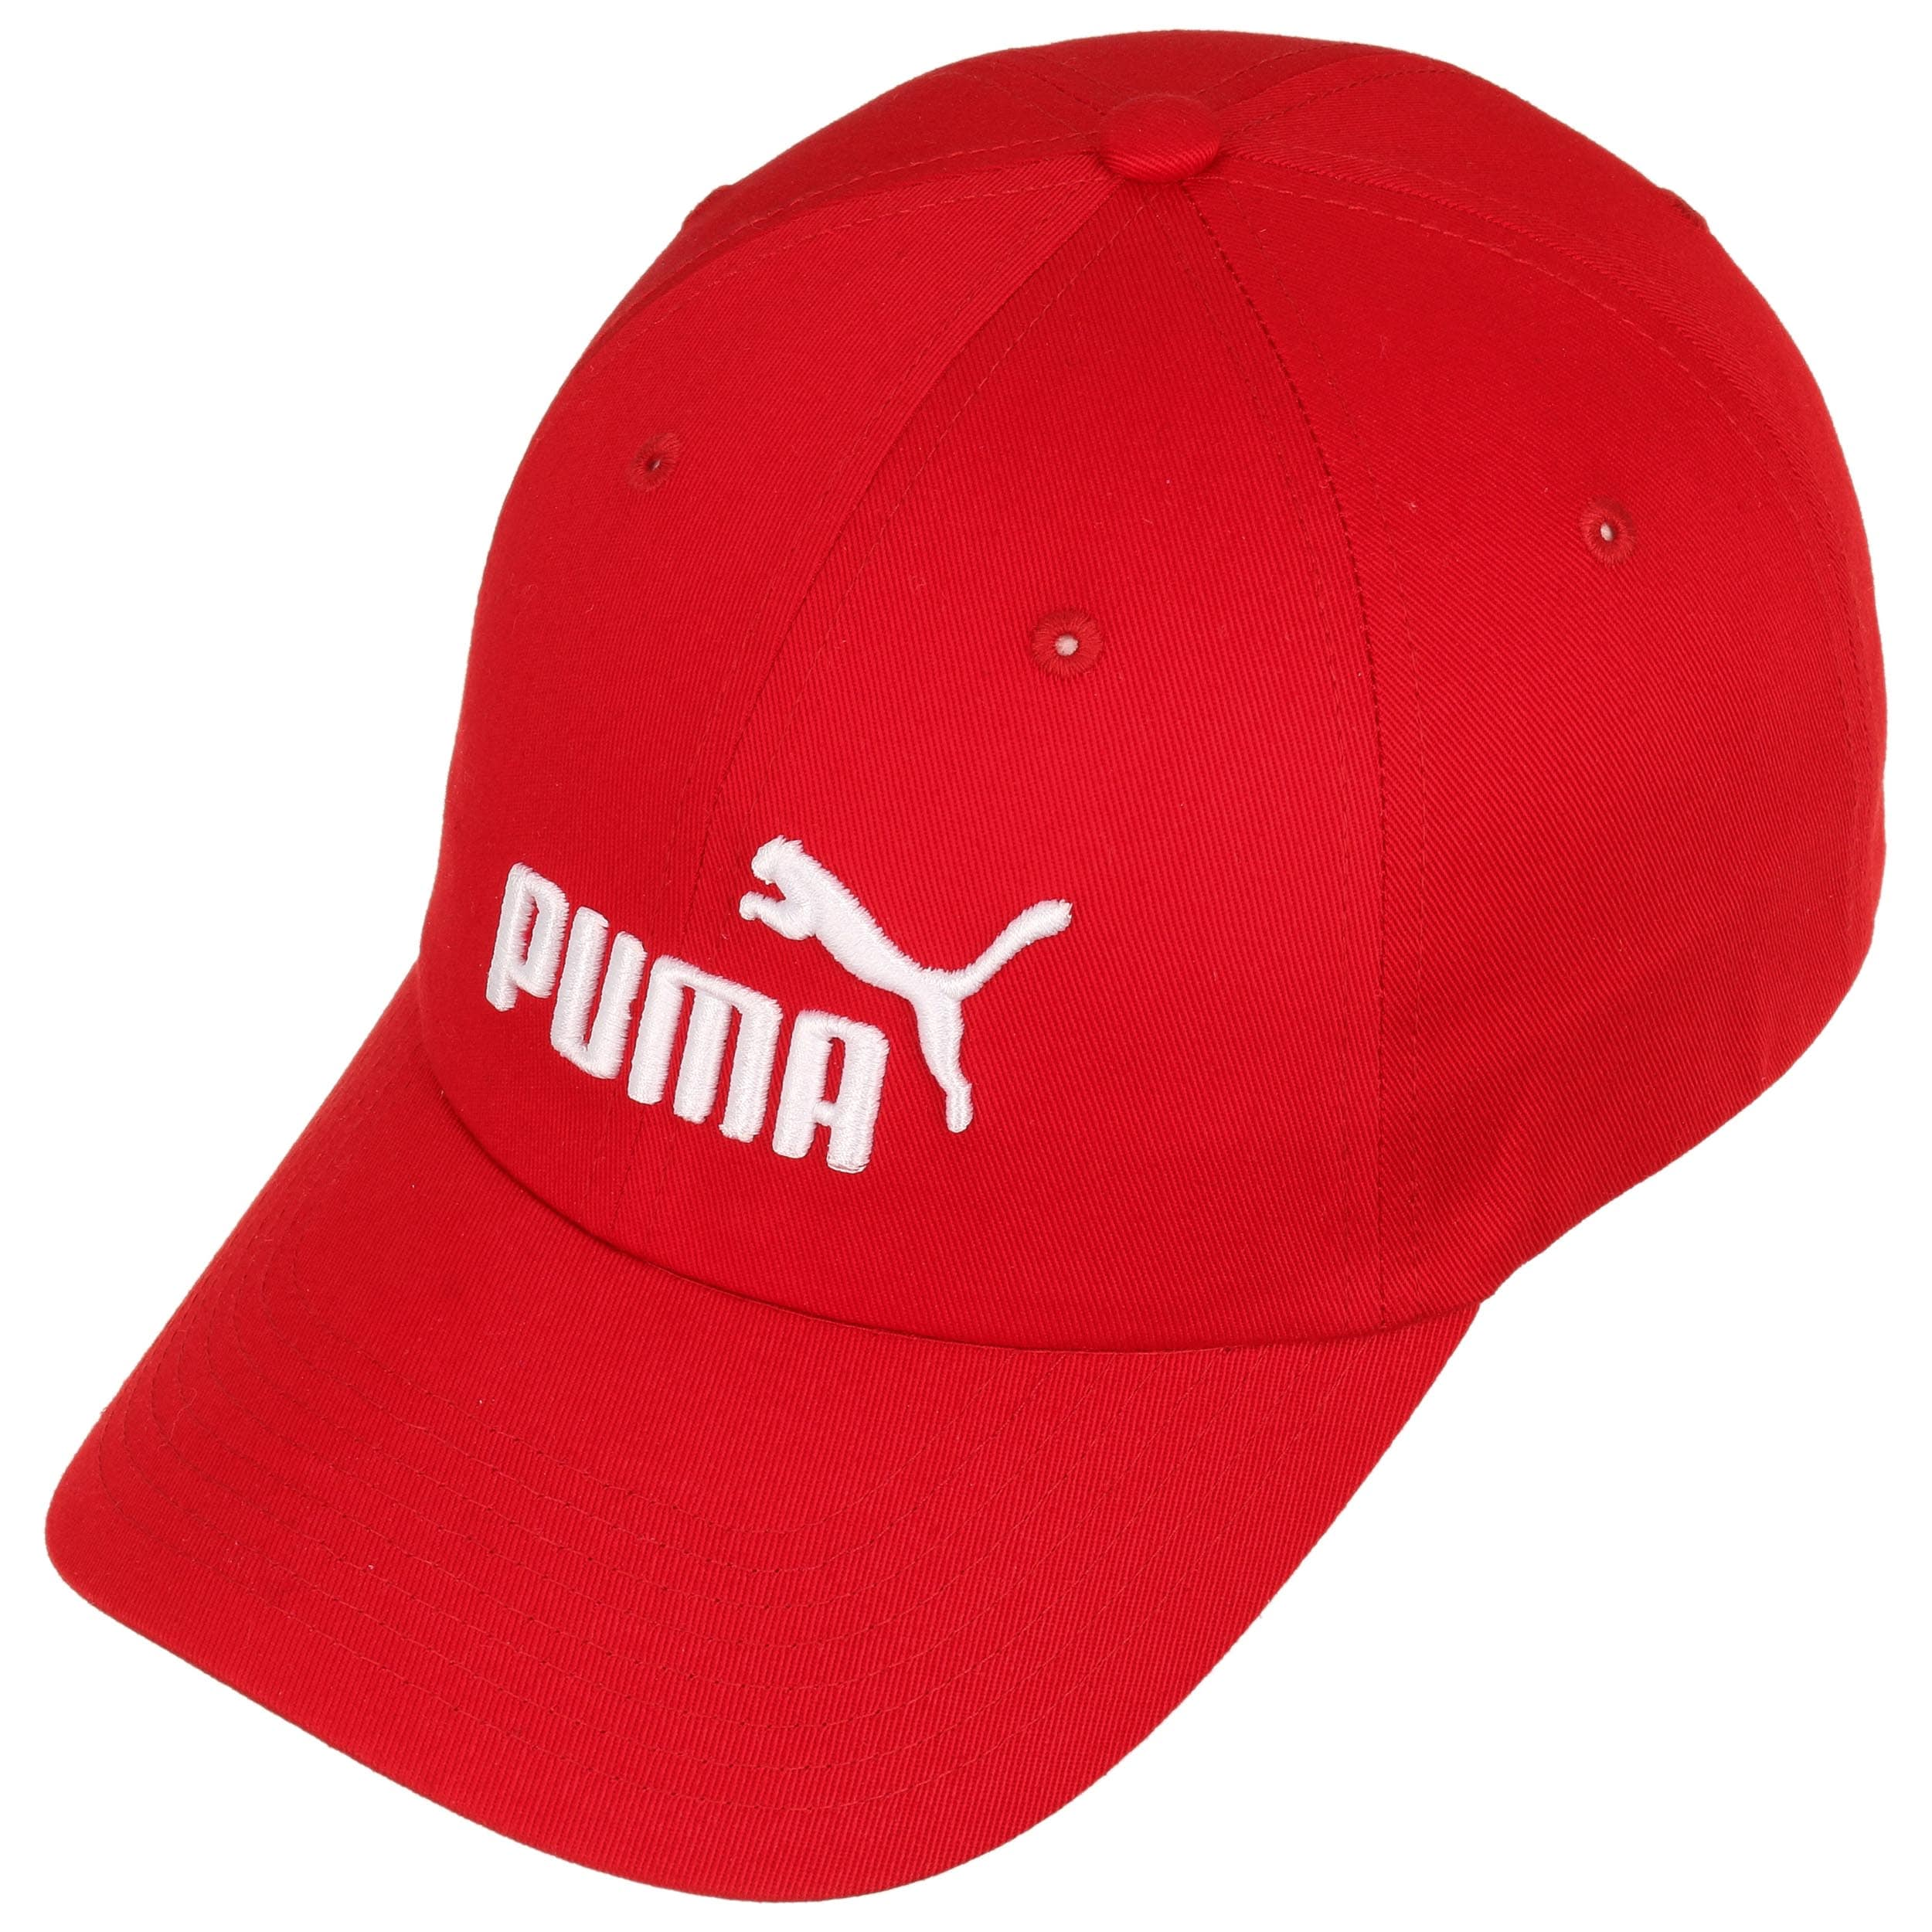 88b13bd8d2d ... promo code for 1 baseball cap by puma red 1 40669 3e870